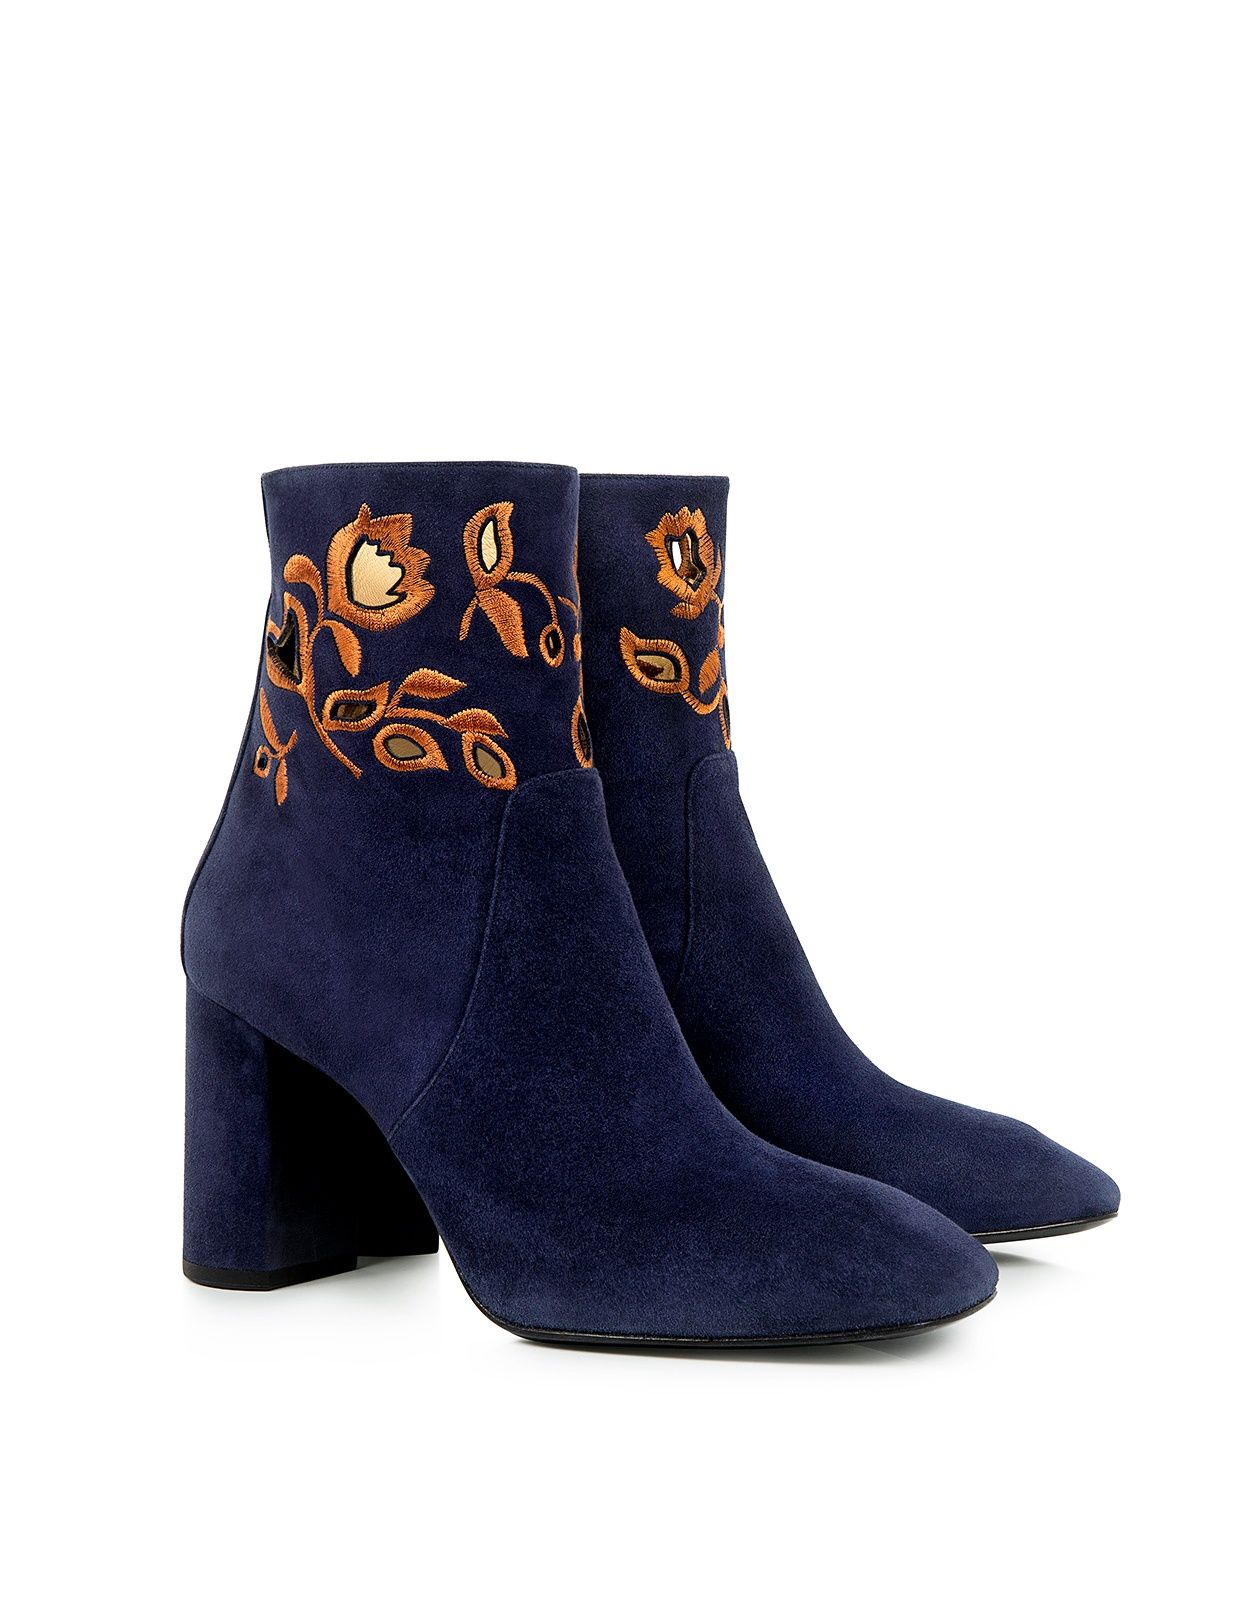 Zooey Floral Embroidered Suede Ankle Boots In 2019 Booties Boots